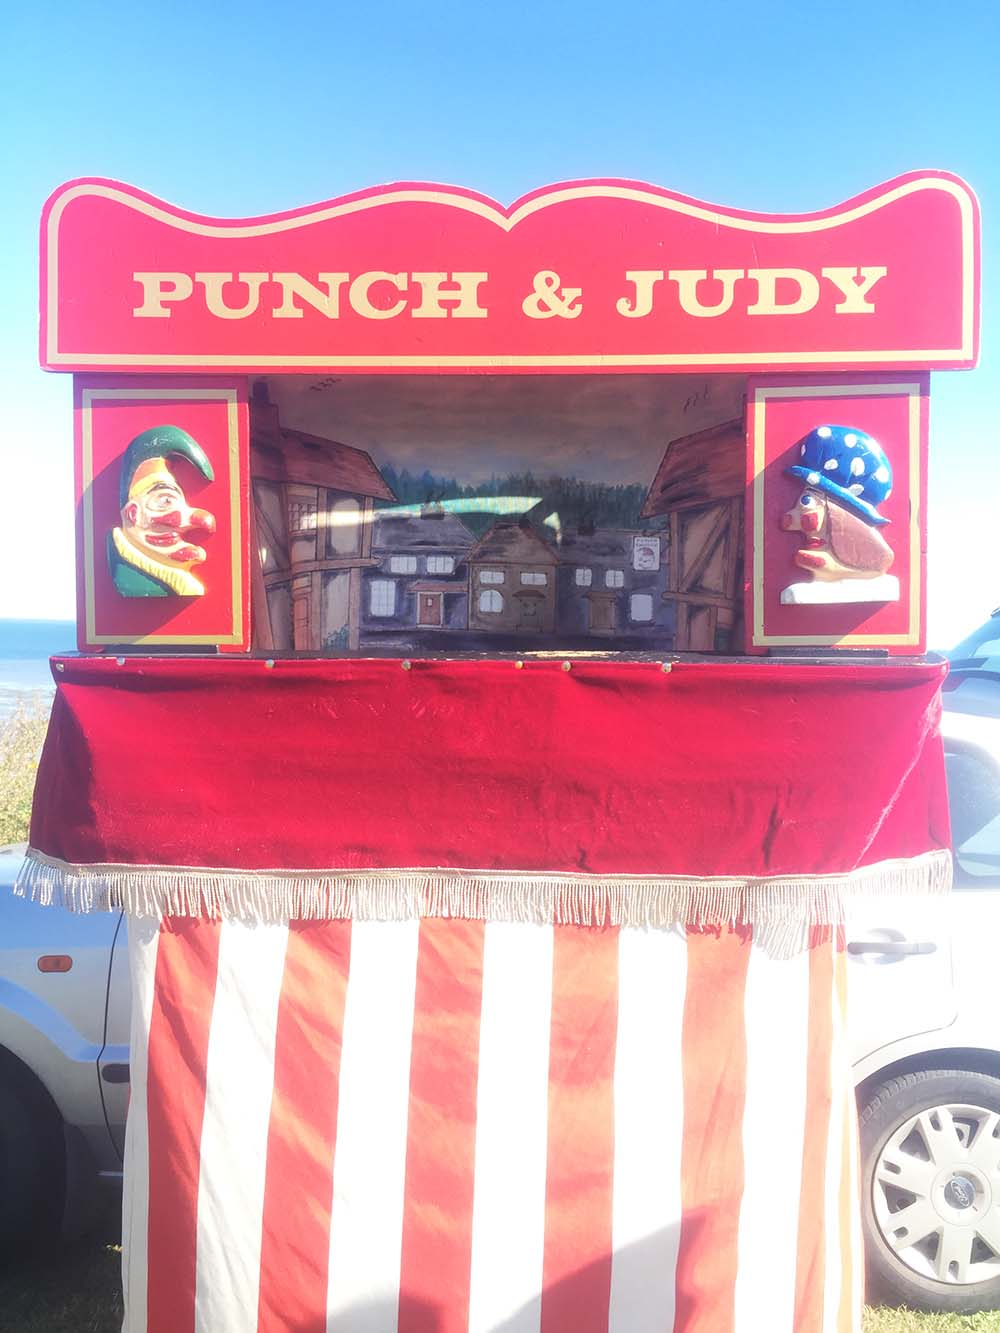 Seaside funfairs (and a real Punch & Judy show!)